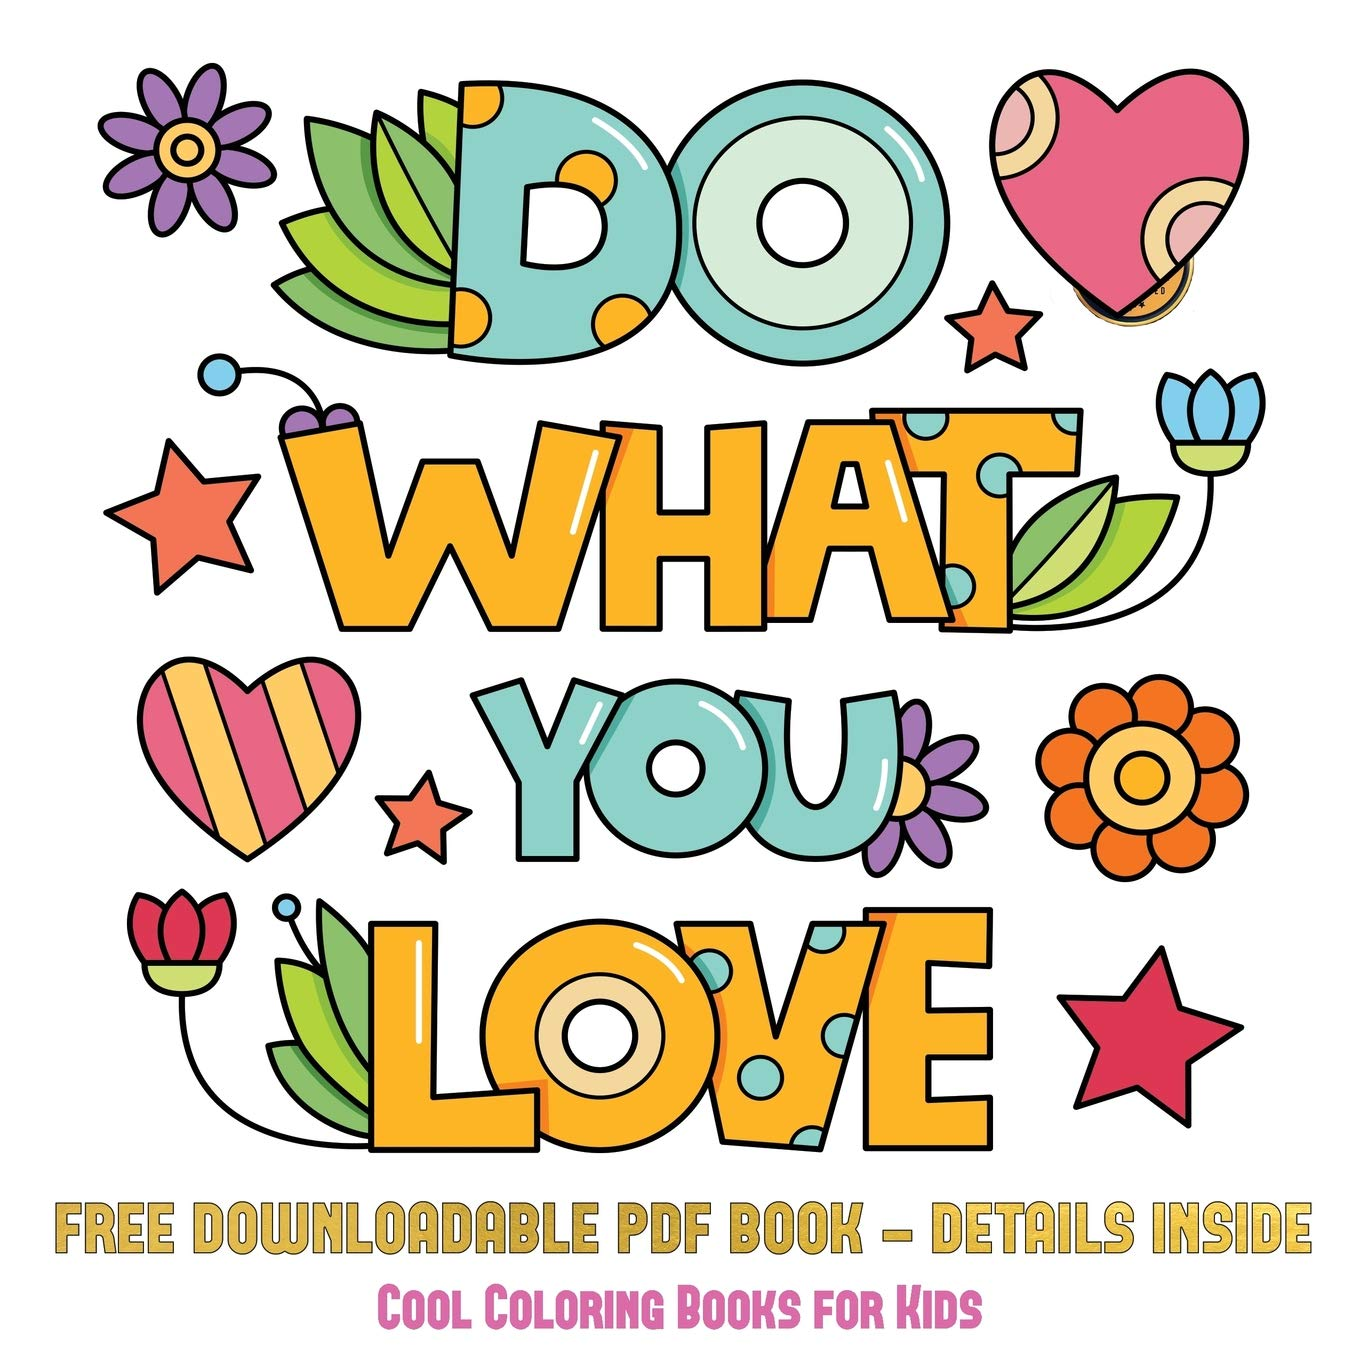 - Cool Coloring Books For Kids (Do What You Love): 36 Coloring Pages